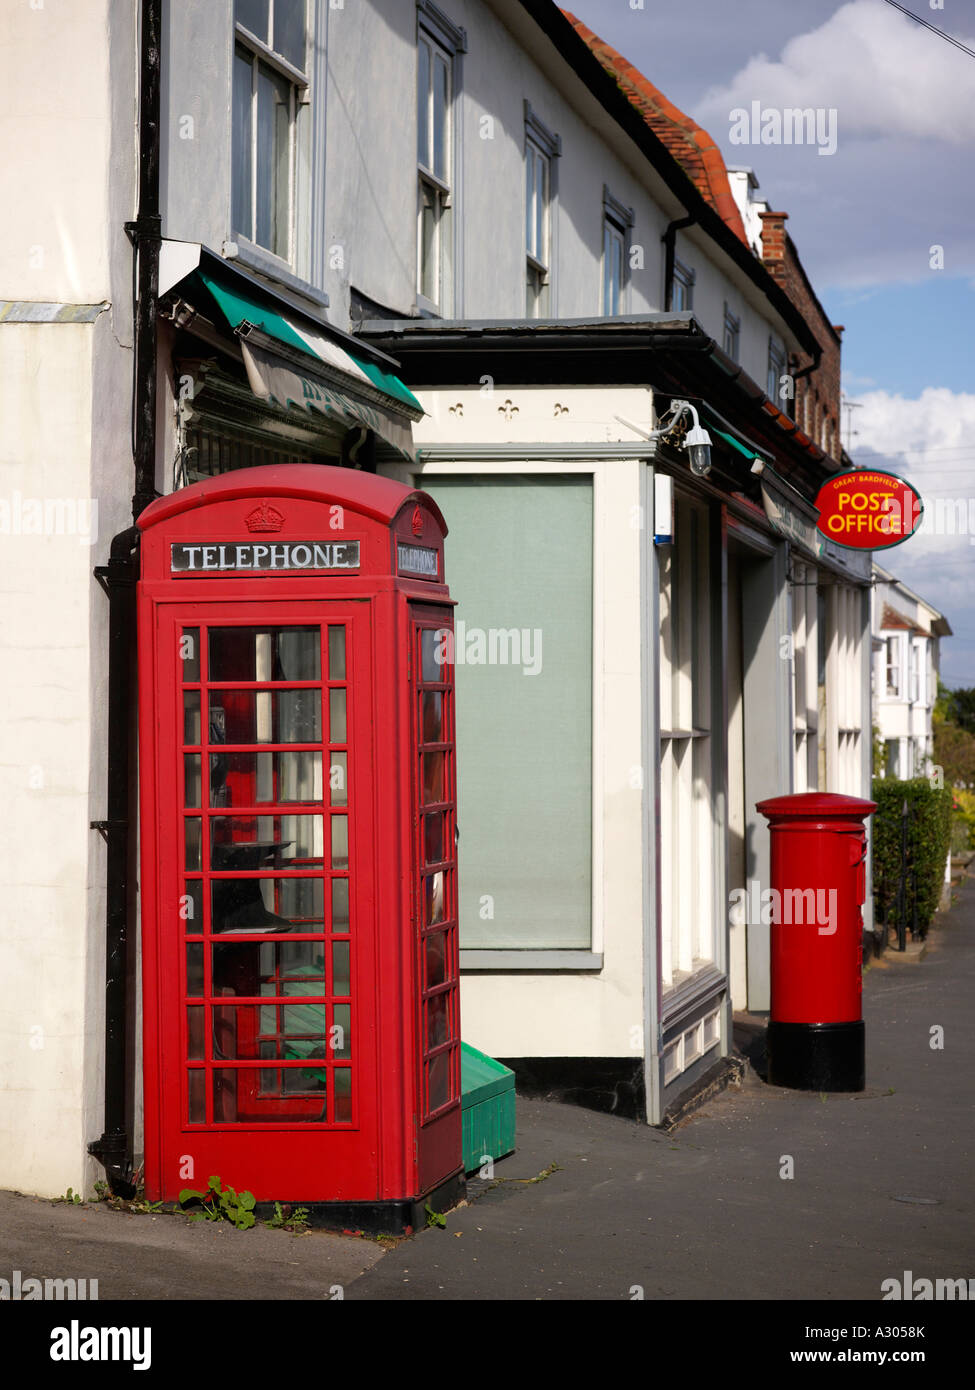 Post office and telephone box in Great Bardfield - Stock Image